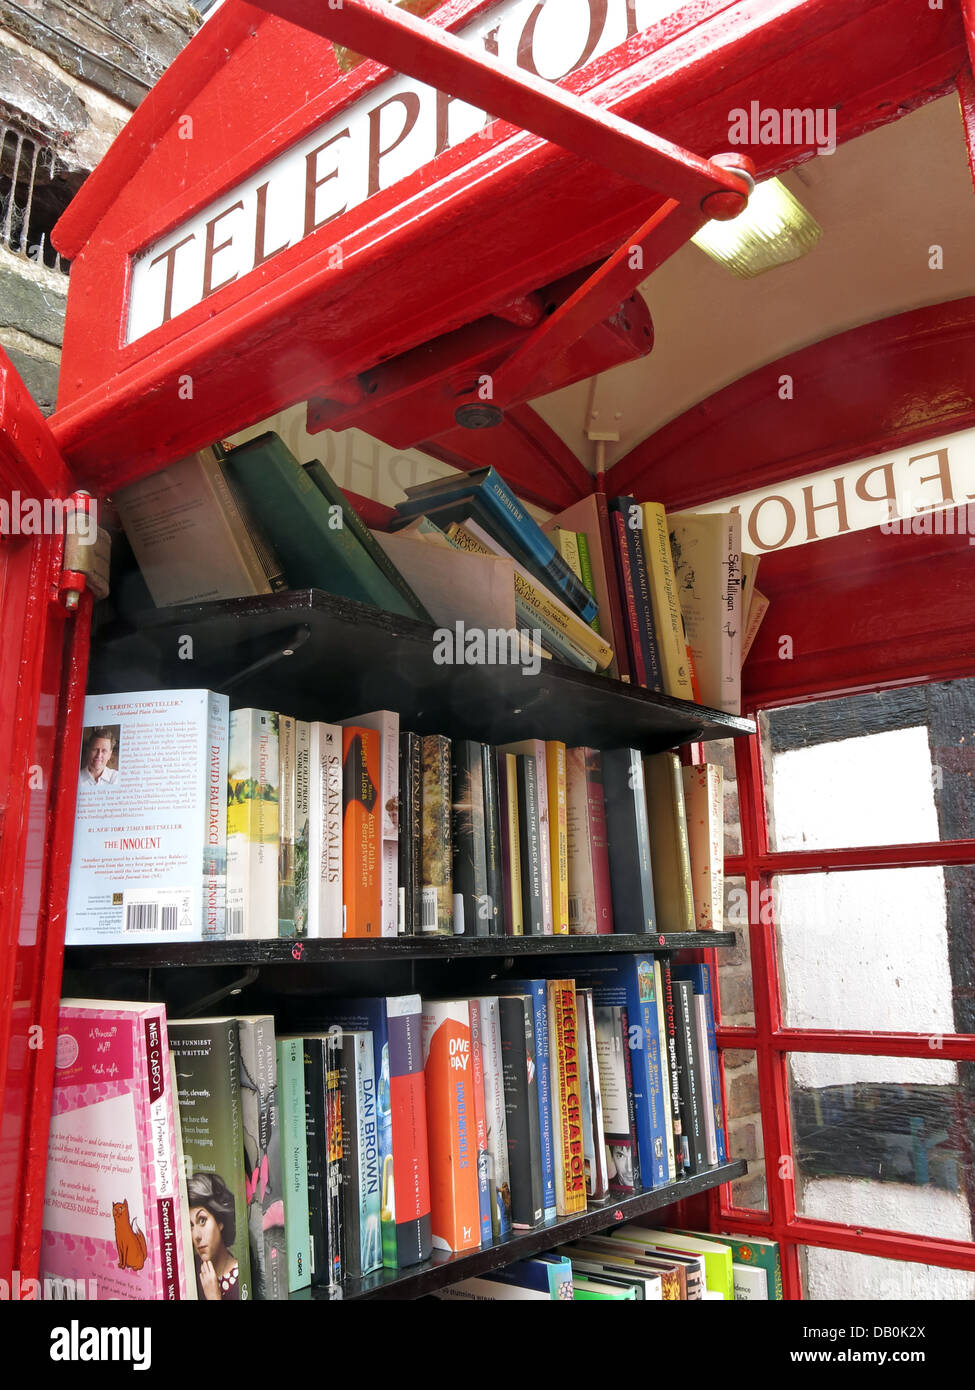 Classic,An,old,red,British,Telephone,box,turned,into,a,village,open,inside,being,made,into,lend,borrow,friendly,small,town,rural,demise,of,well,looked,after,gt,great,Budworth,Cheshire,east,west,new,mini,libraries,minilibrary,minilibraries,mini-libraries,kiosk,stocked,up,exchange,scheme,new,door,gotonysmith,We,are,hoping,people,will,use,them,on,a,regular,basis,and,every,time,they,take,a,book,they,will,leave,one,behind,book-exchange,read,reading,literature,literary,GPO,BT,BritishTelecom,British,Telecom,eccentric,eccentrics,English,England,beautiful,Englishness,redtelephone,redtelephonebox,Buy Pictures of,Buy Images Of